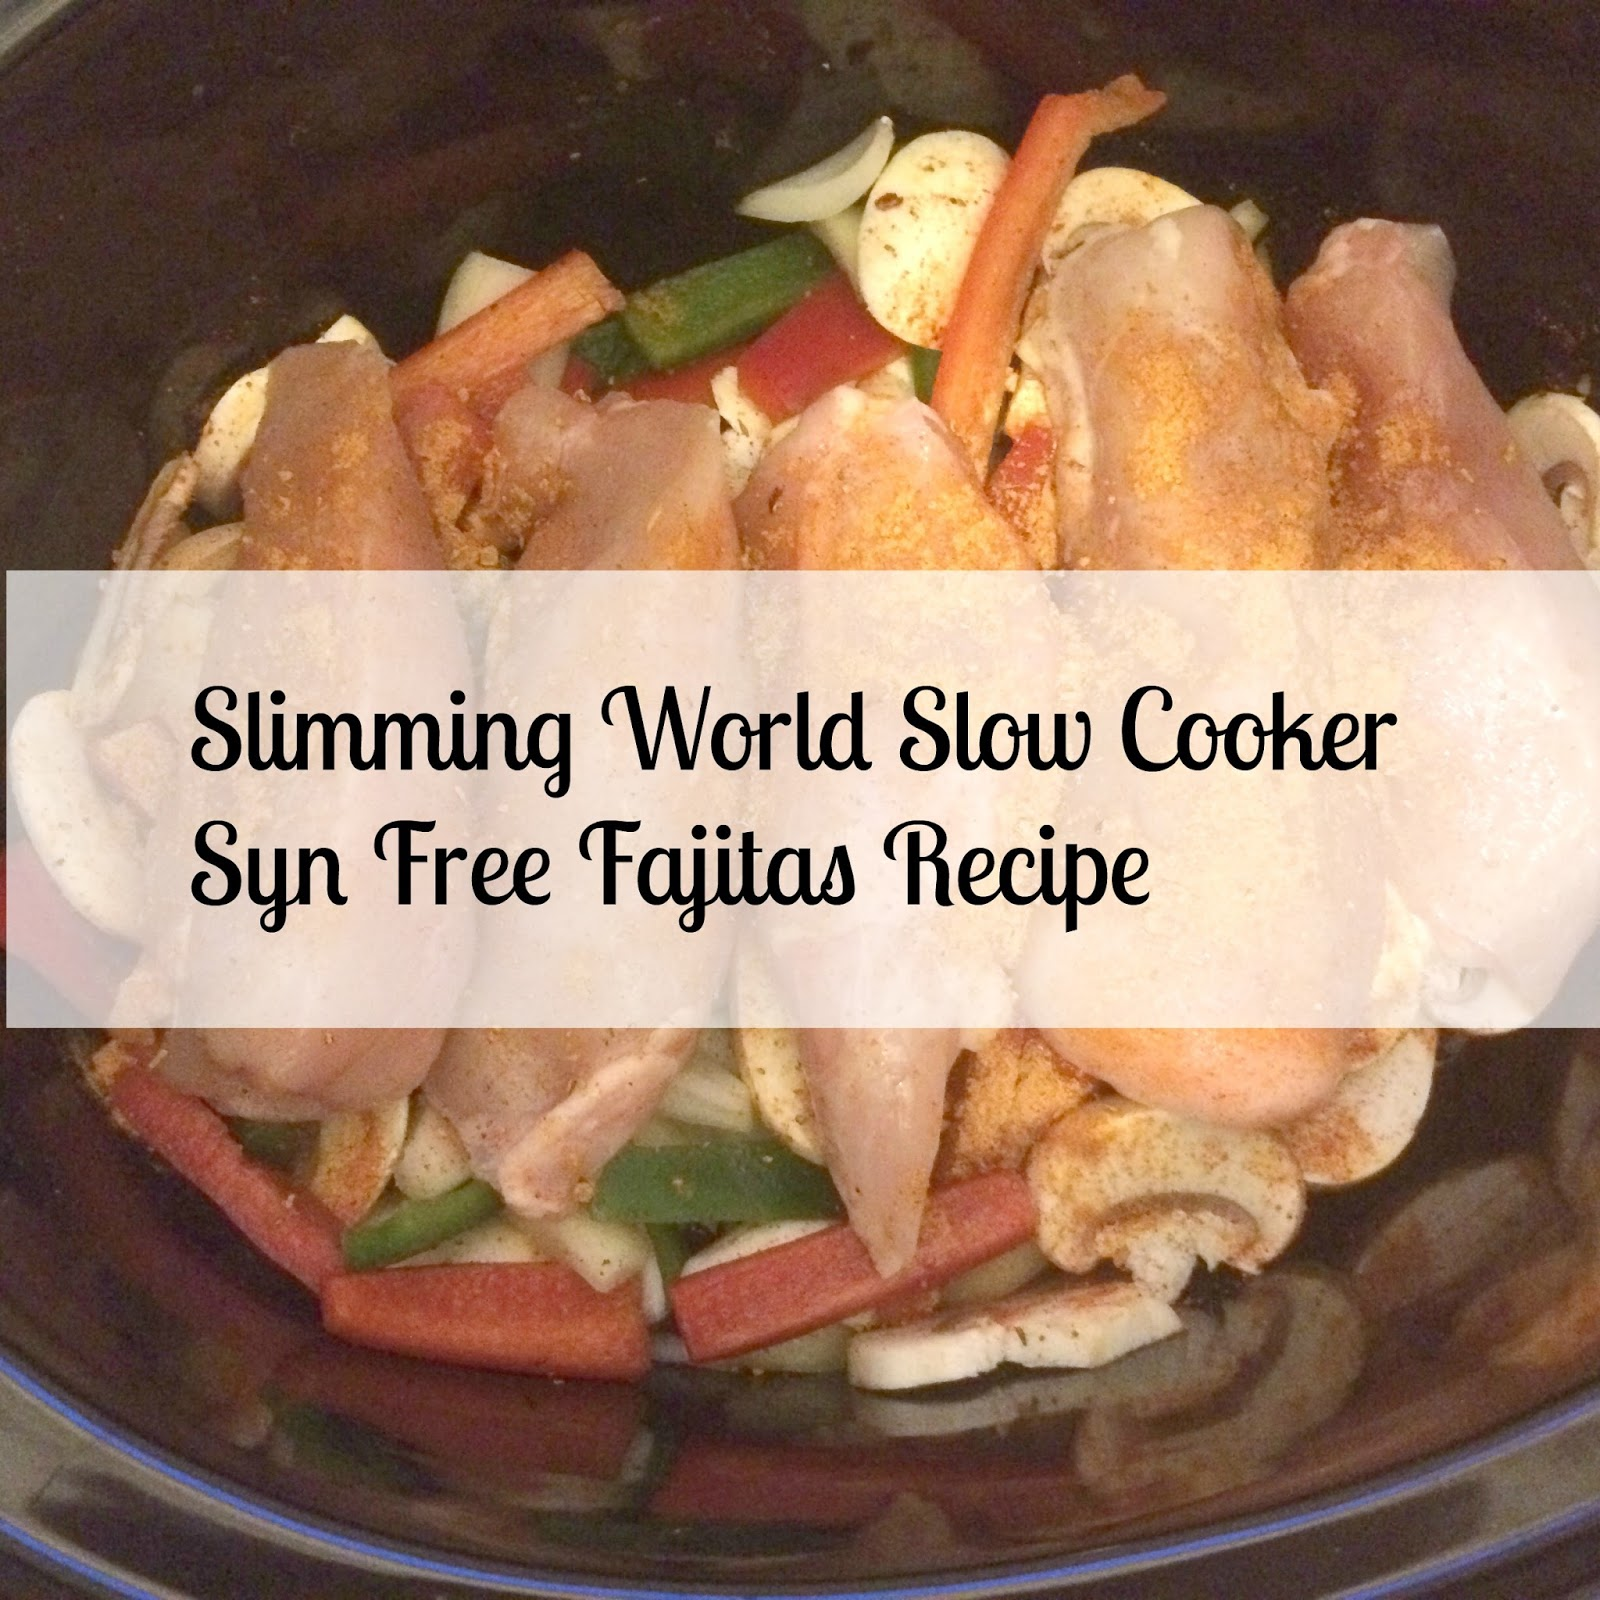 Slimming World Slow Cooker Chicken Fajitas Recipe